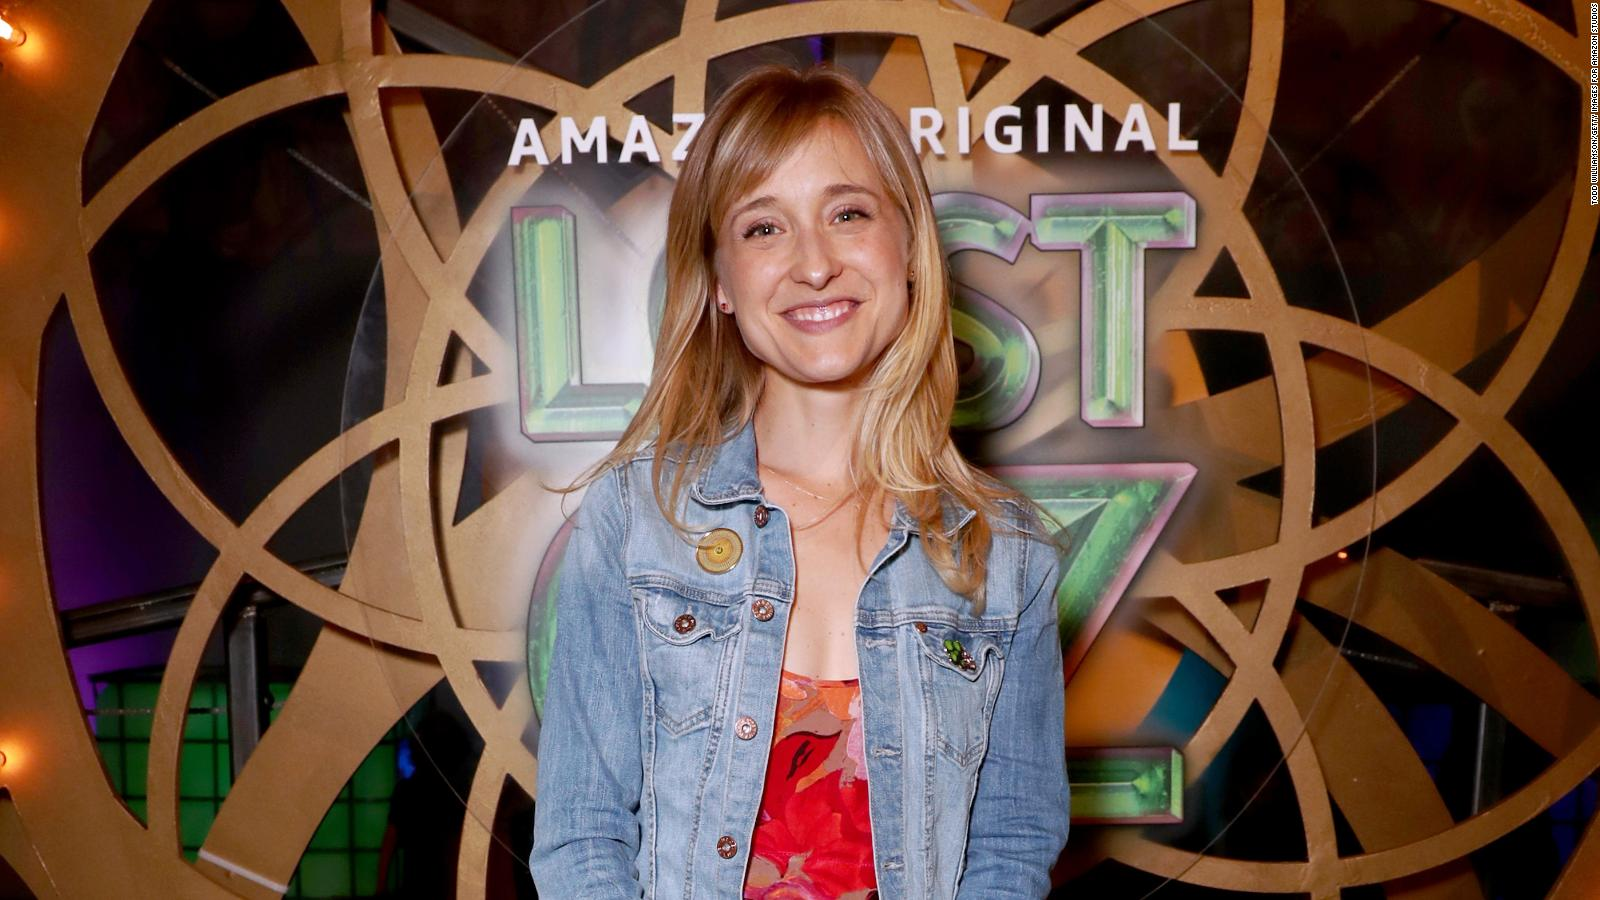 Allison Mack Porn Video actress charged with recruiting sex slaves